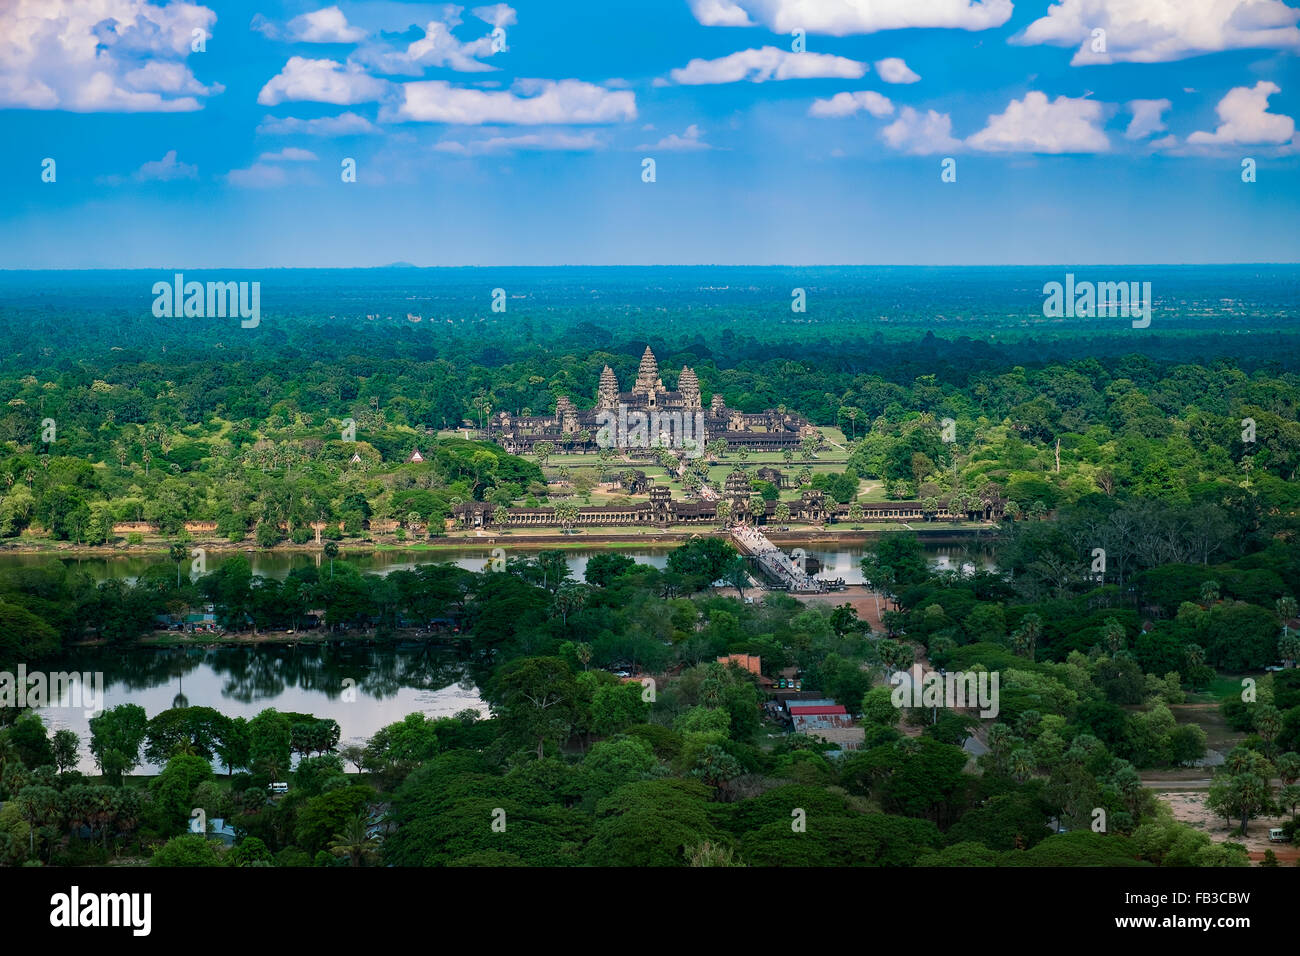 Beautiful aerial view of Angkor Wat Temple, Cambodia, Southeast Asia - Stock Image